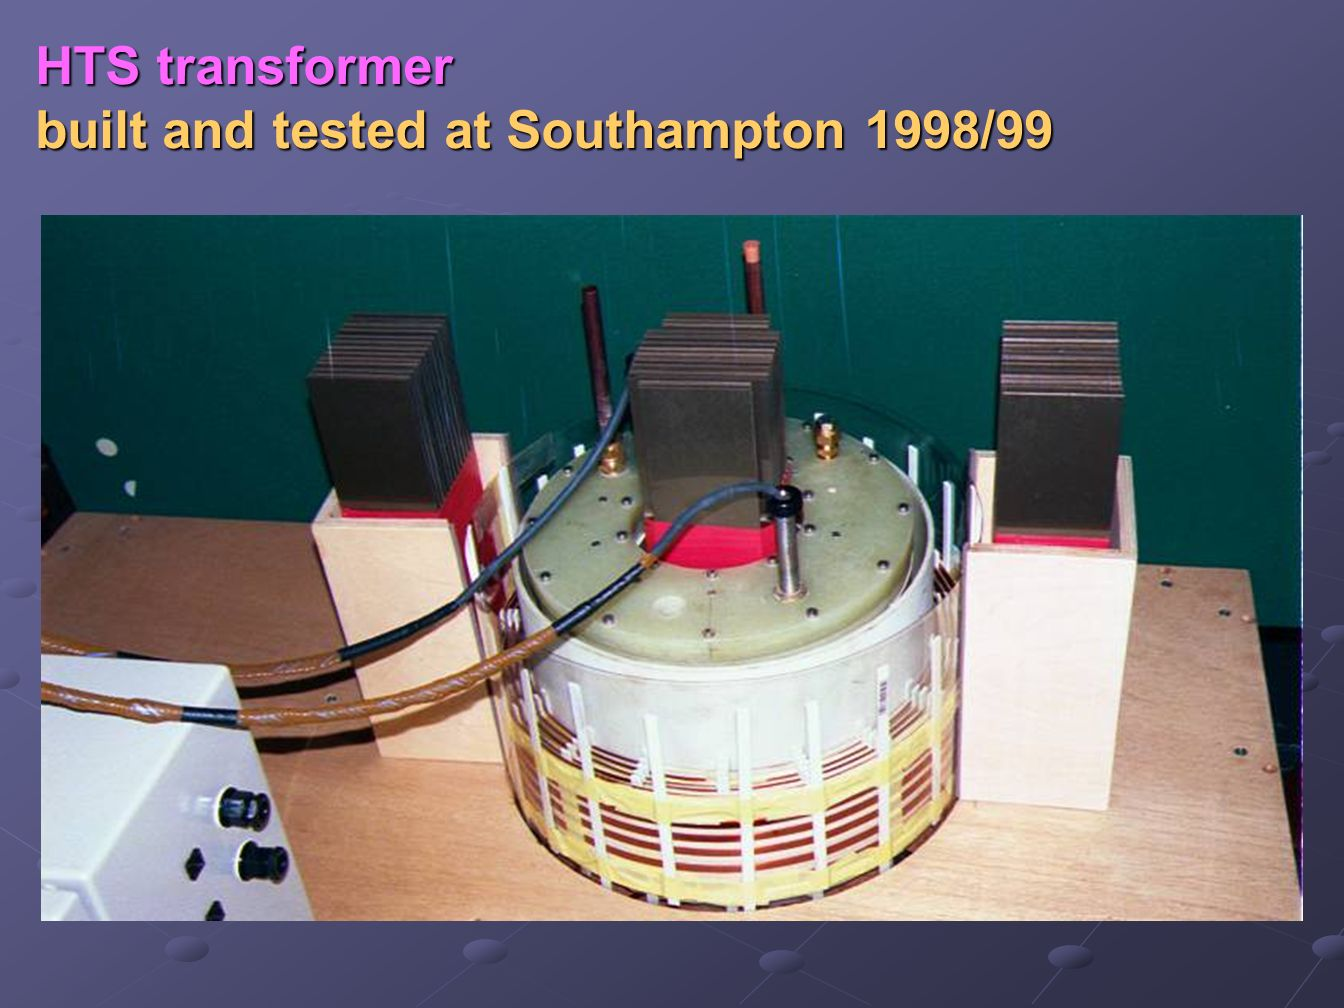 HTS transformer built and tested at Southampton 1998/99